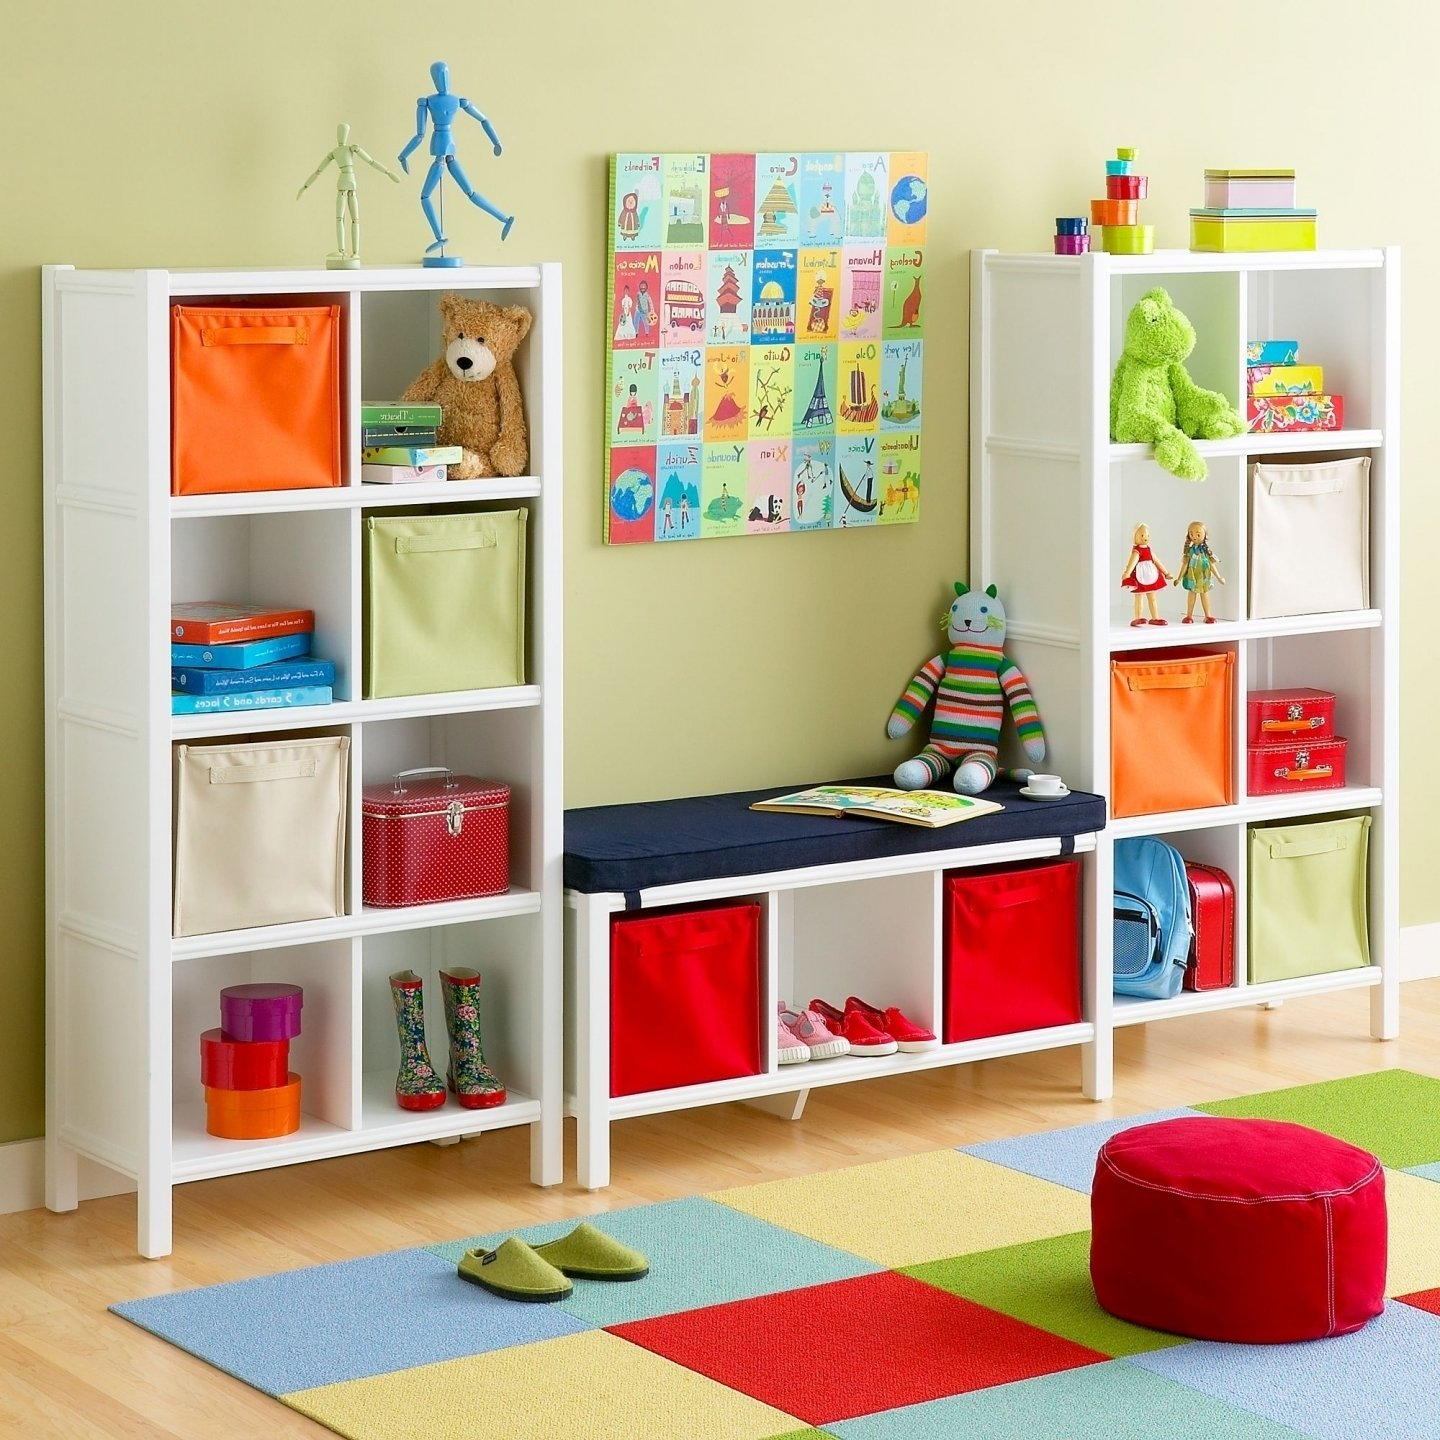 10 Unique Kids Bedroom Ideas For Small Rooms childrens bedroom designs for small rooms bedroom exquisite kids 2020